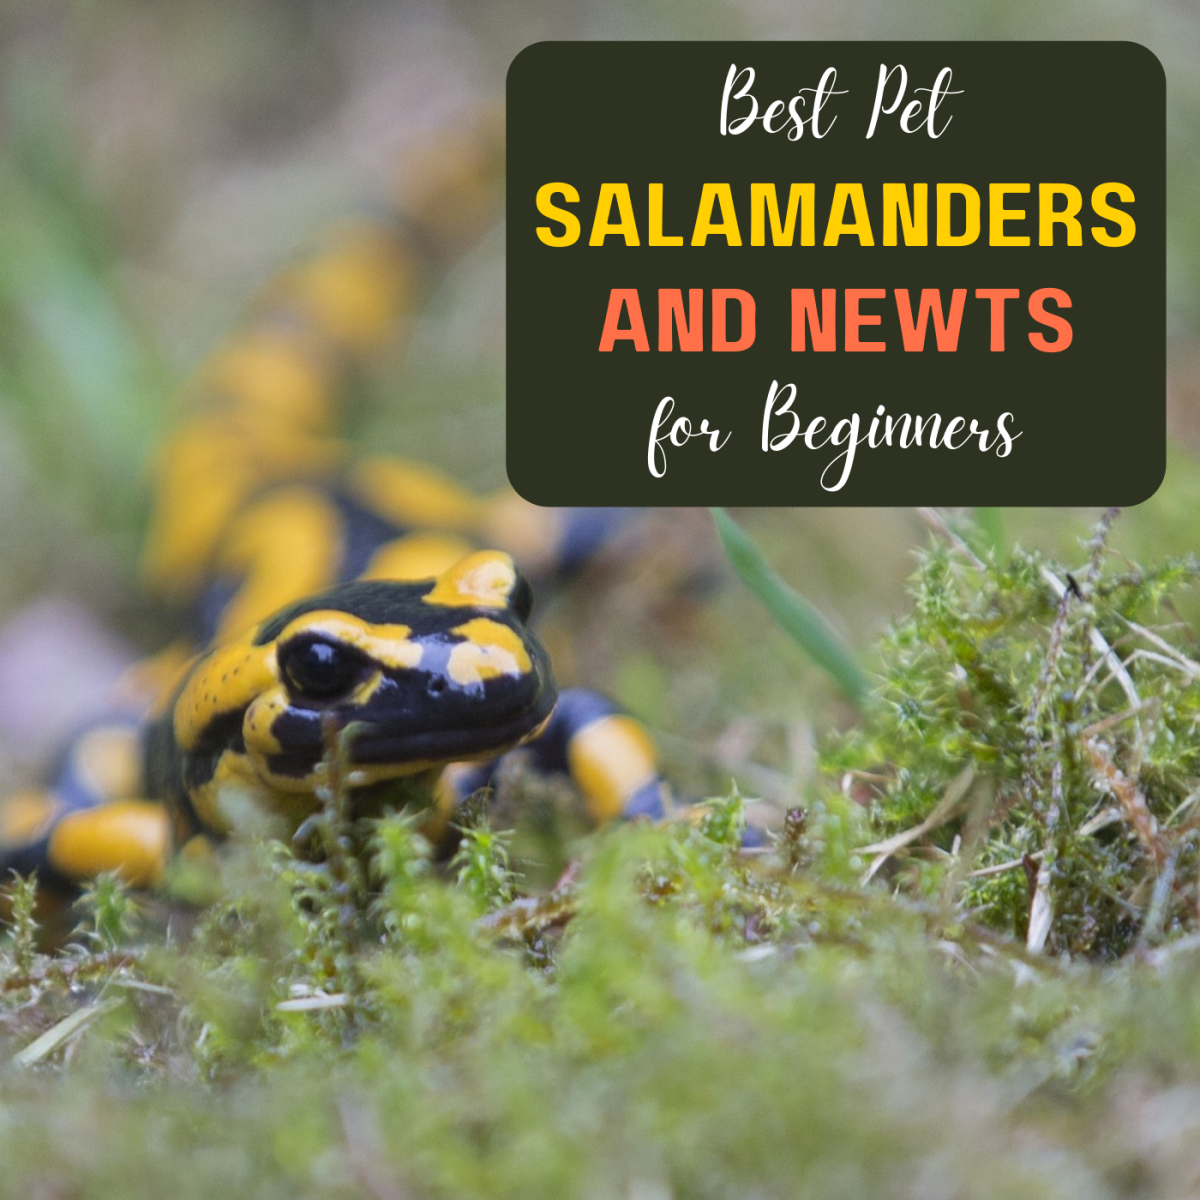 Best Beginner Pet Salamanders and Newts